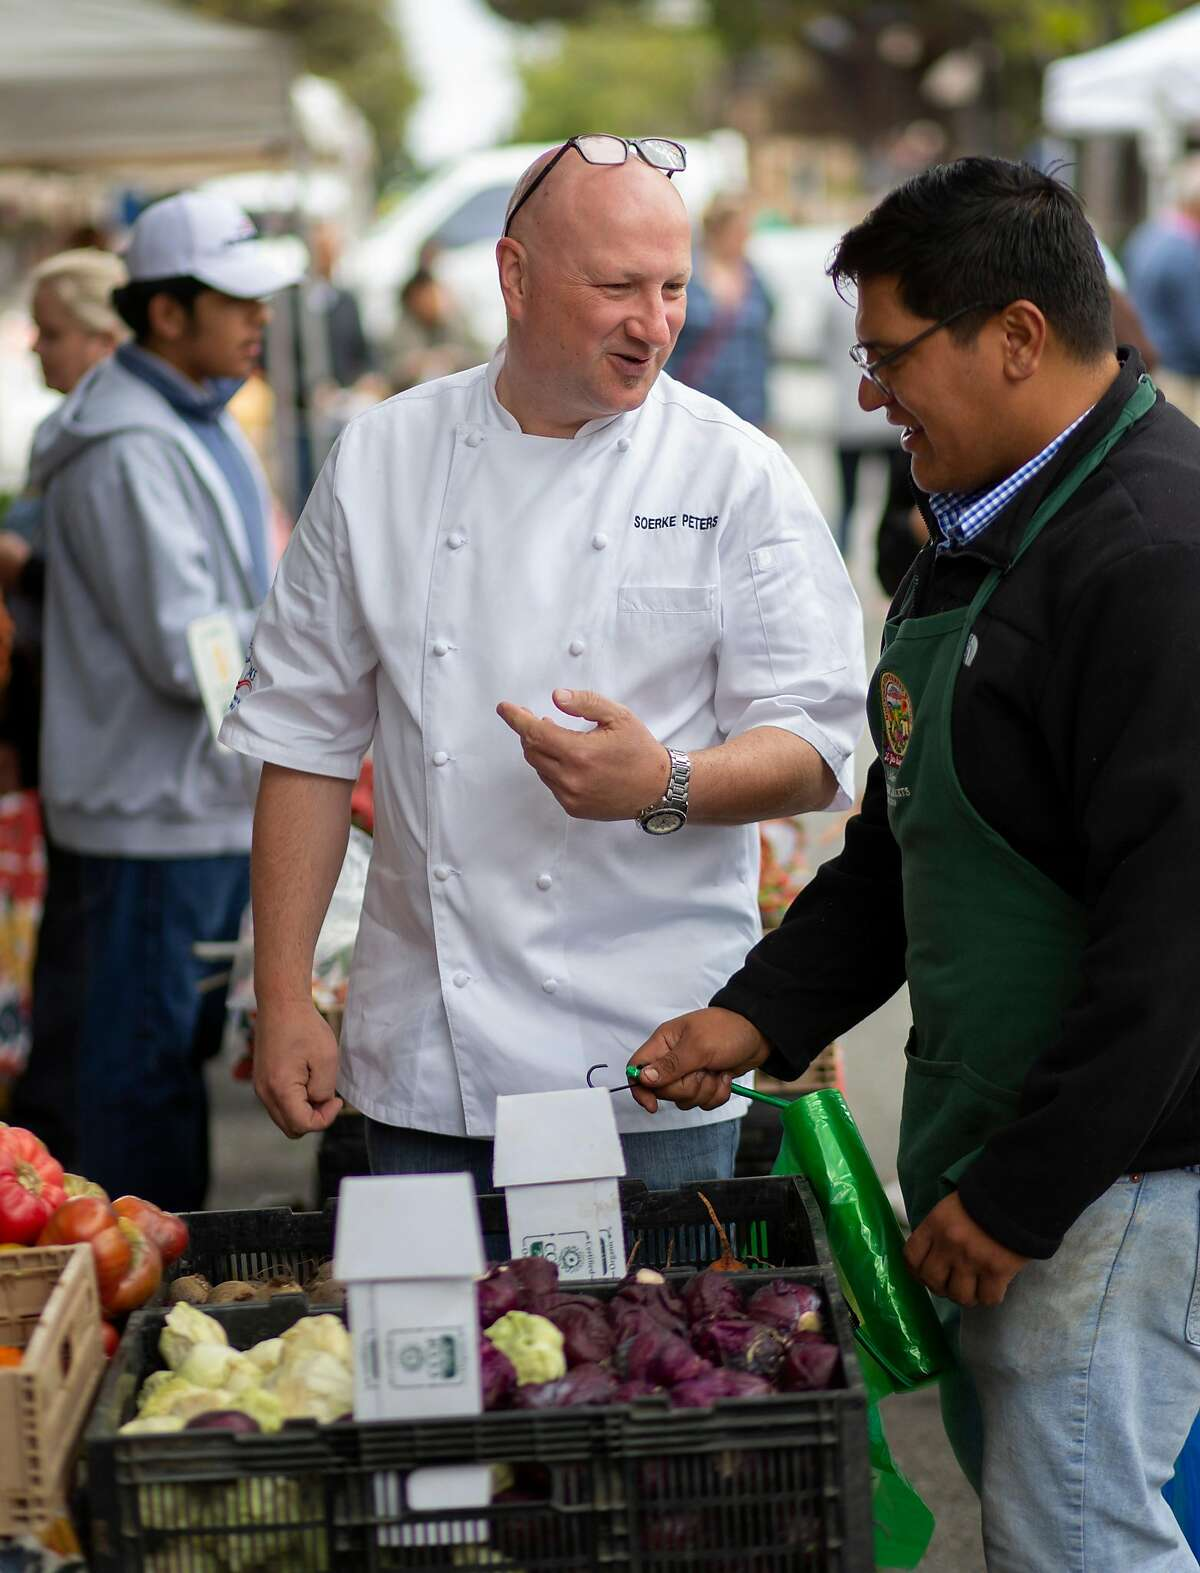 Soerke Peters (left) talks with Raul Lopez of Hall's Organic Farms while shopping at the Carmel farmers' market.